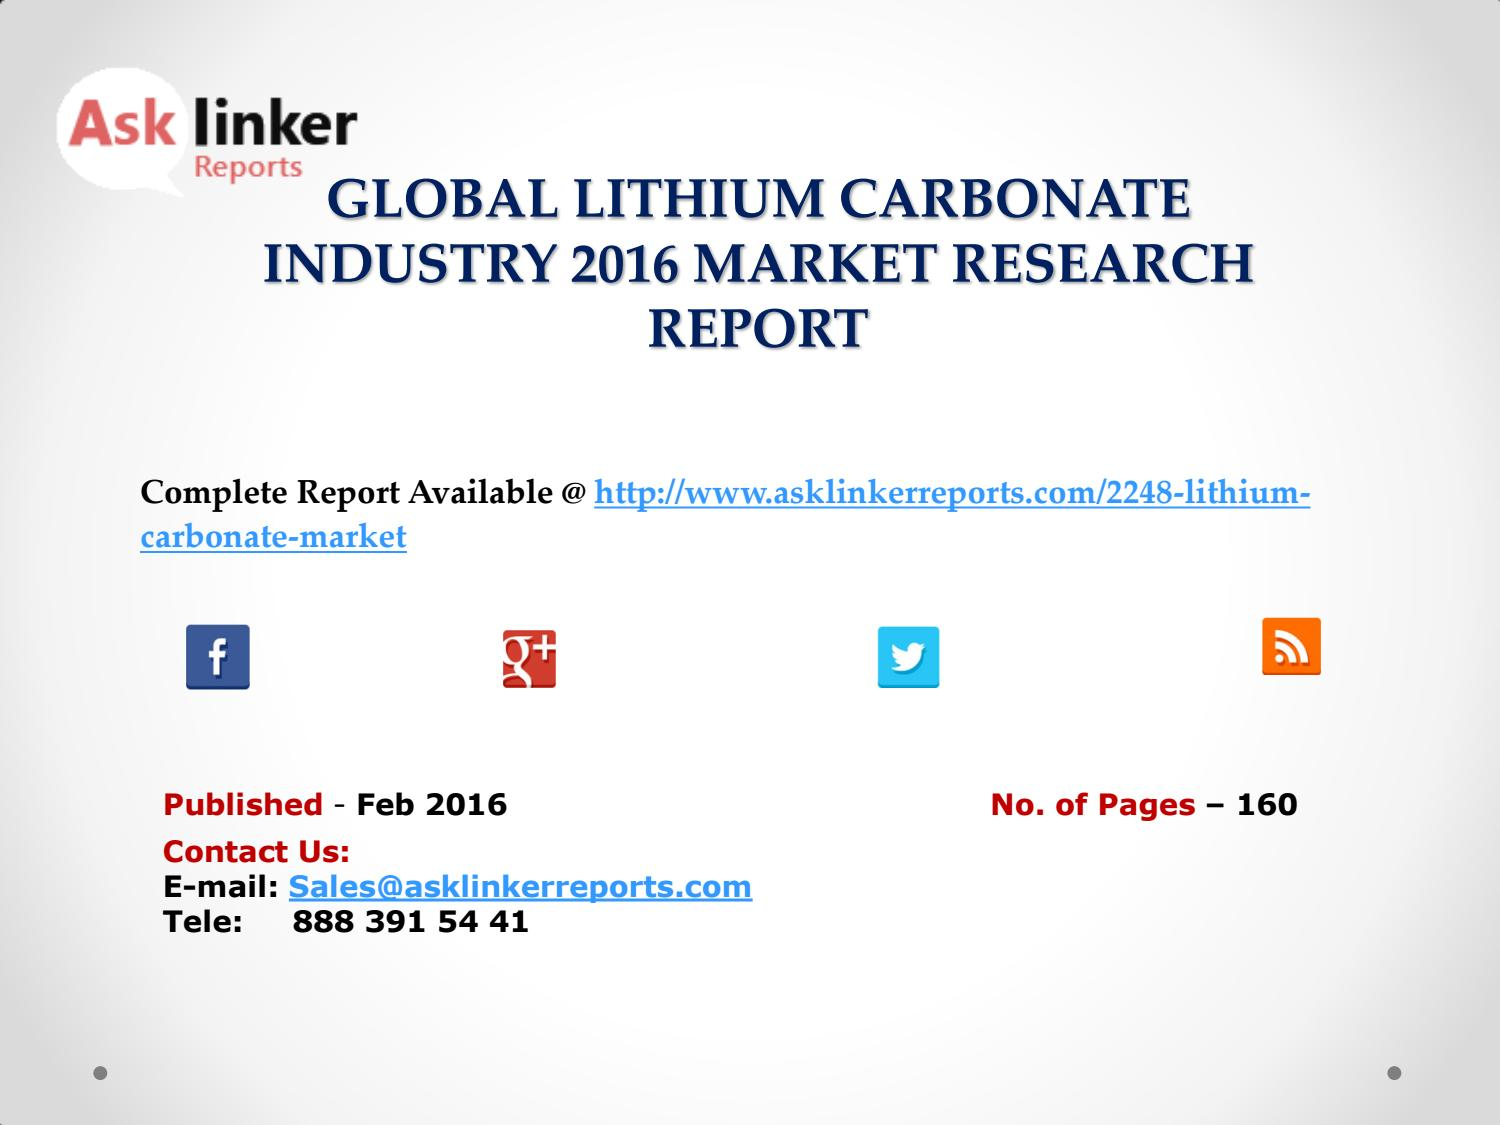 Lithium Carbonate Industry Production and Market share 2012